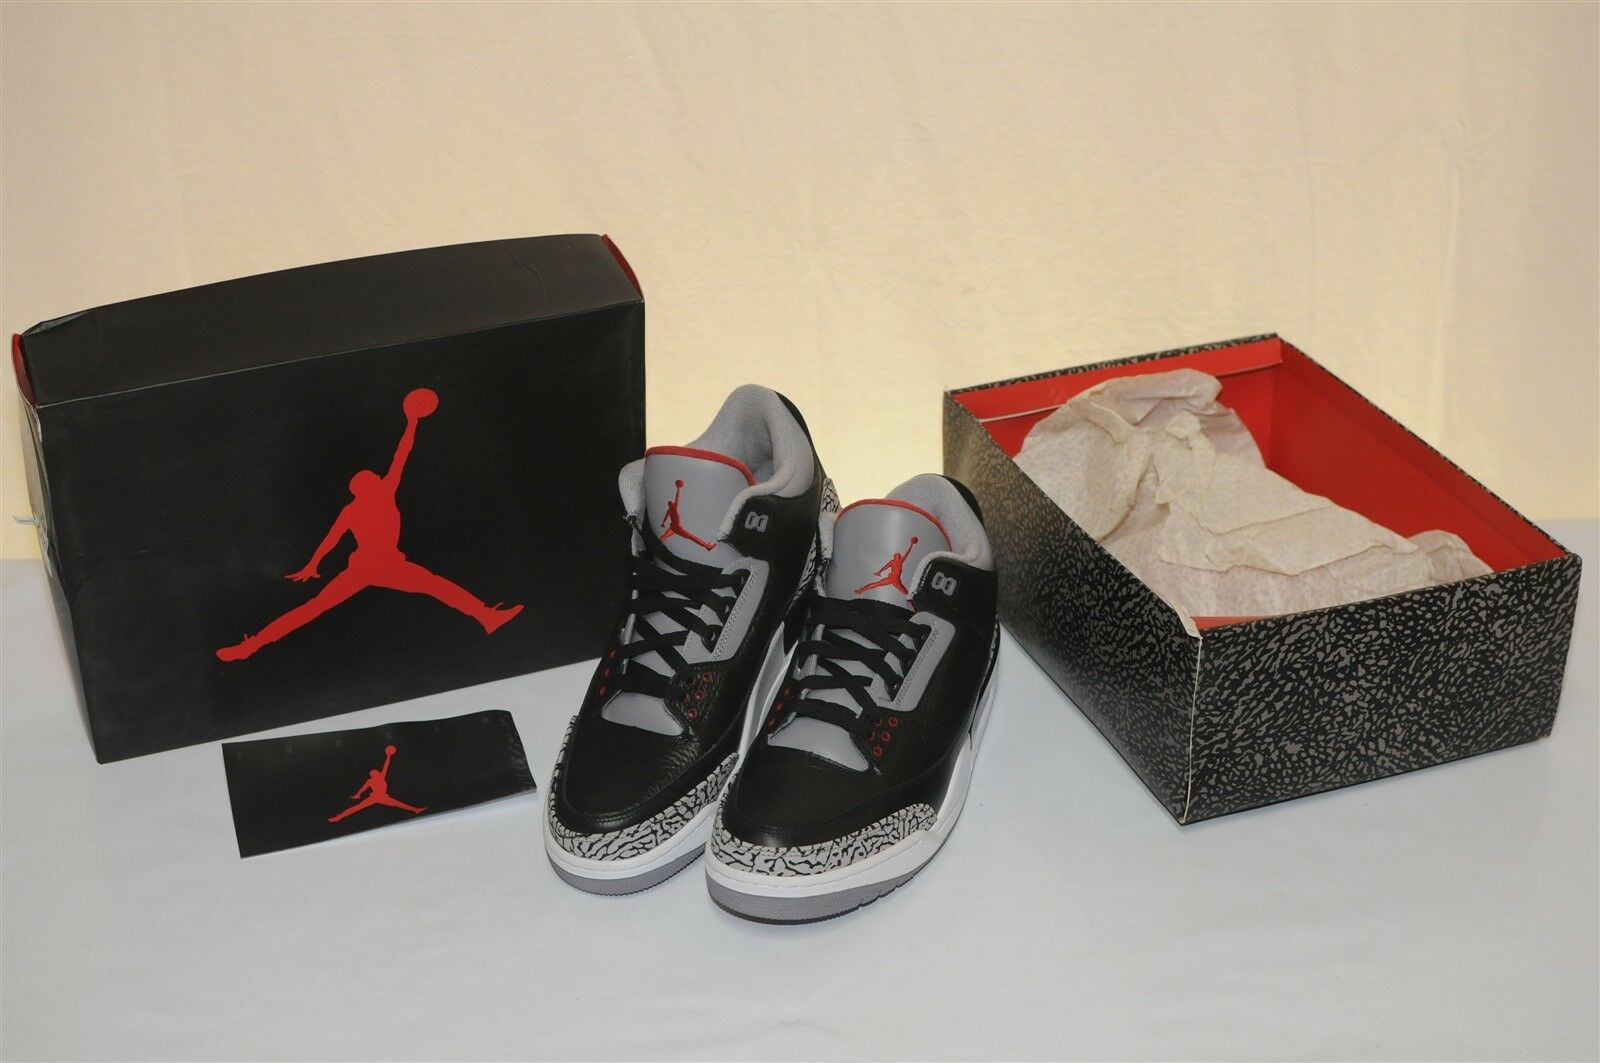 Nike Air Jordan retro 3 Men's Athletic shoes collectors shoes vintage real 12